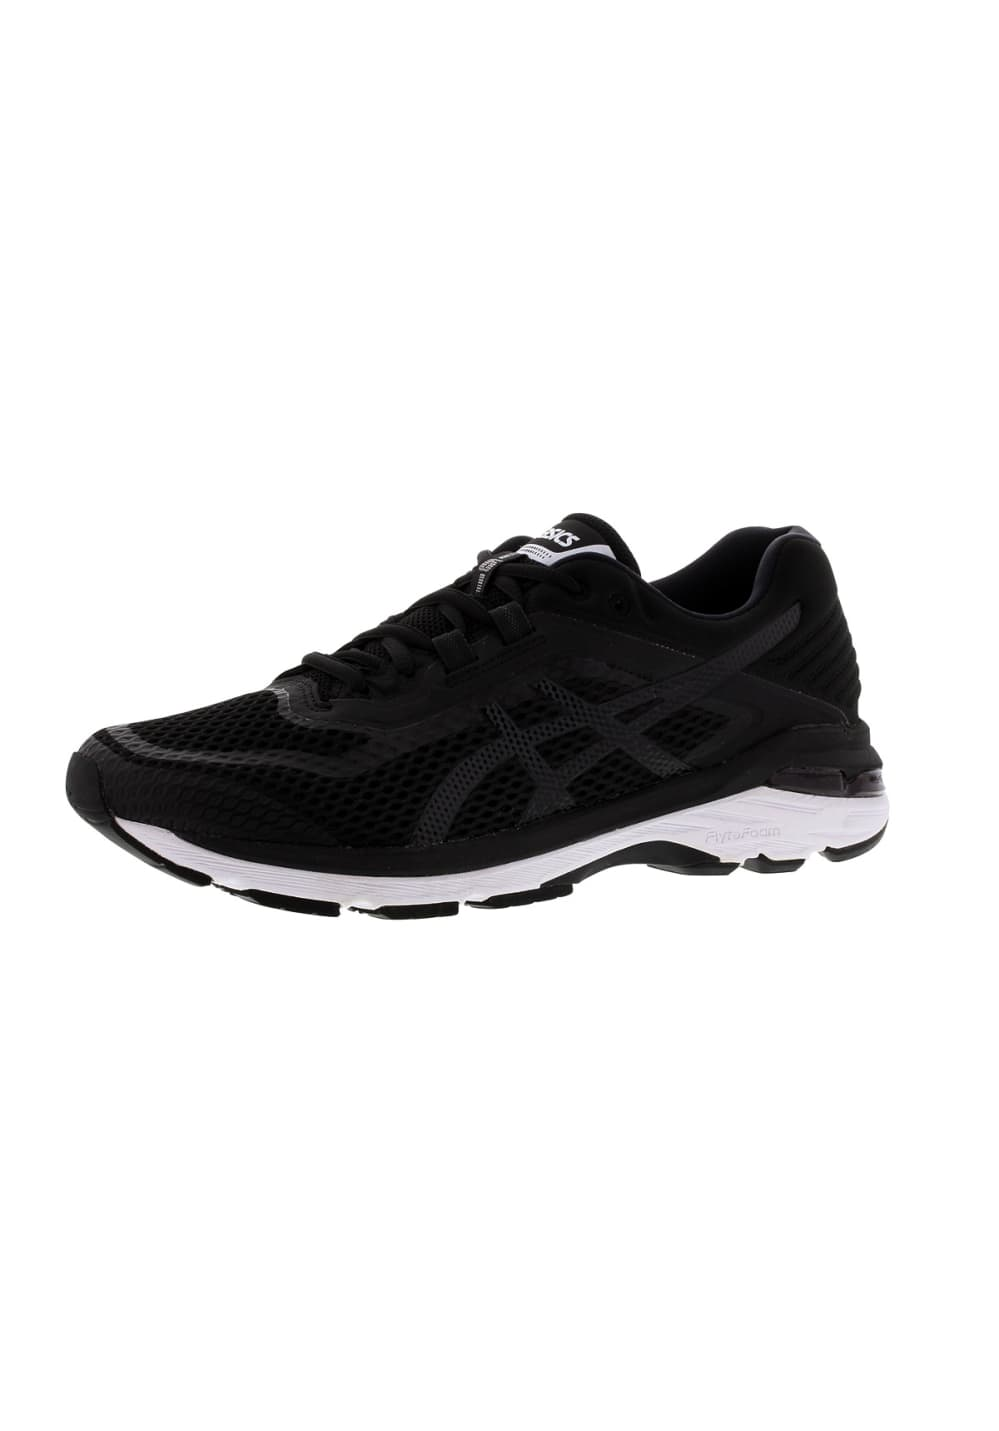 ASICS GT 2000 6 Running shoes for Men Black